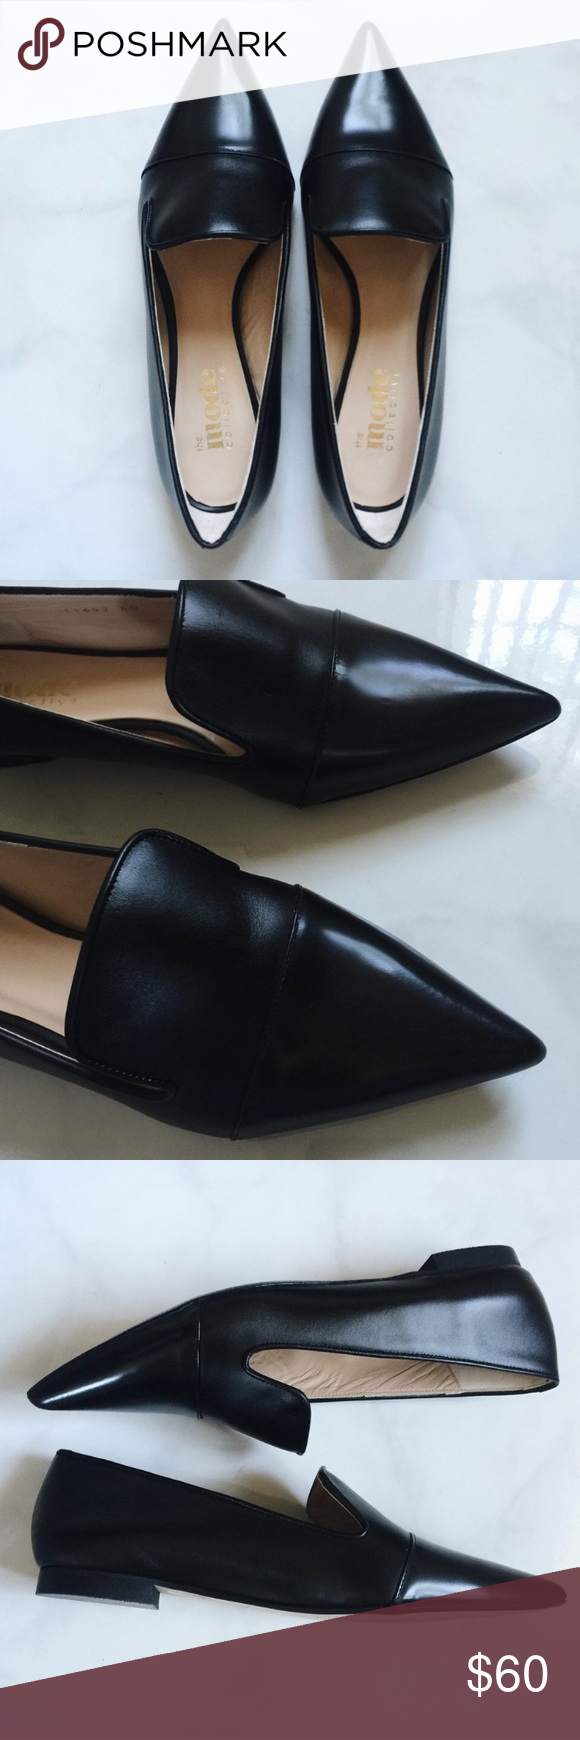 Mode Collective Black loafer flats Mode Collective black loafer flats. Worn but good condition. Original price $239 Mode Collective Shoes Flats & Loafers